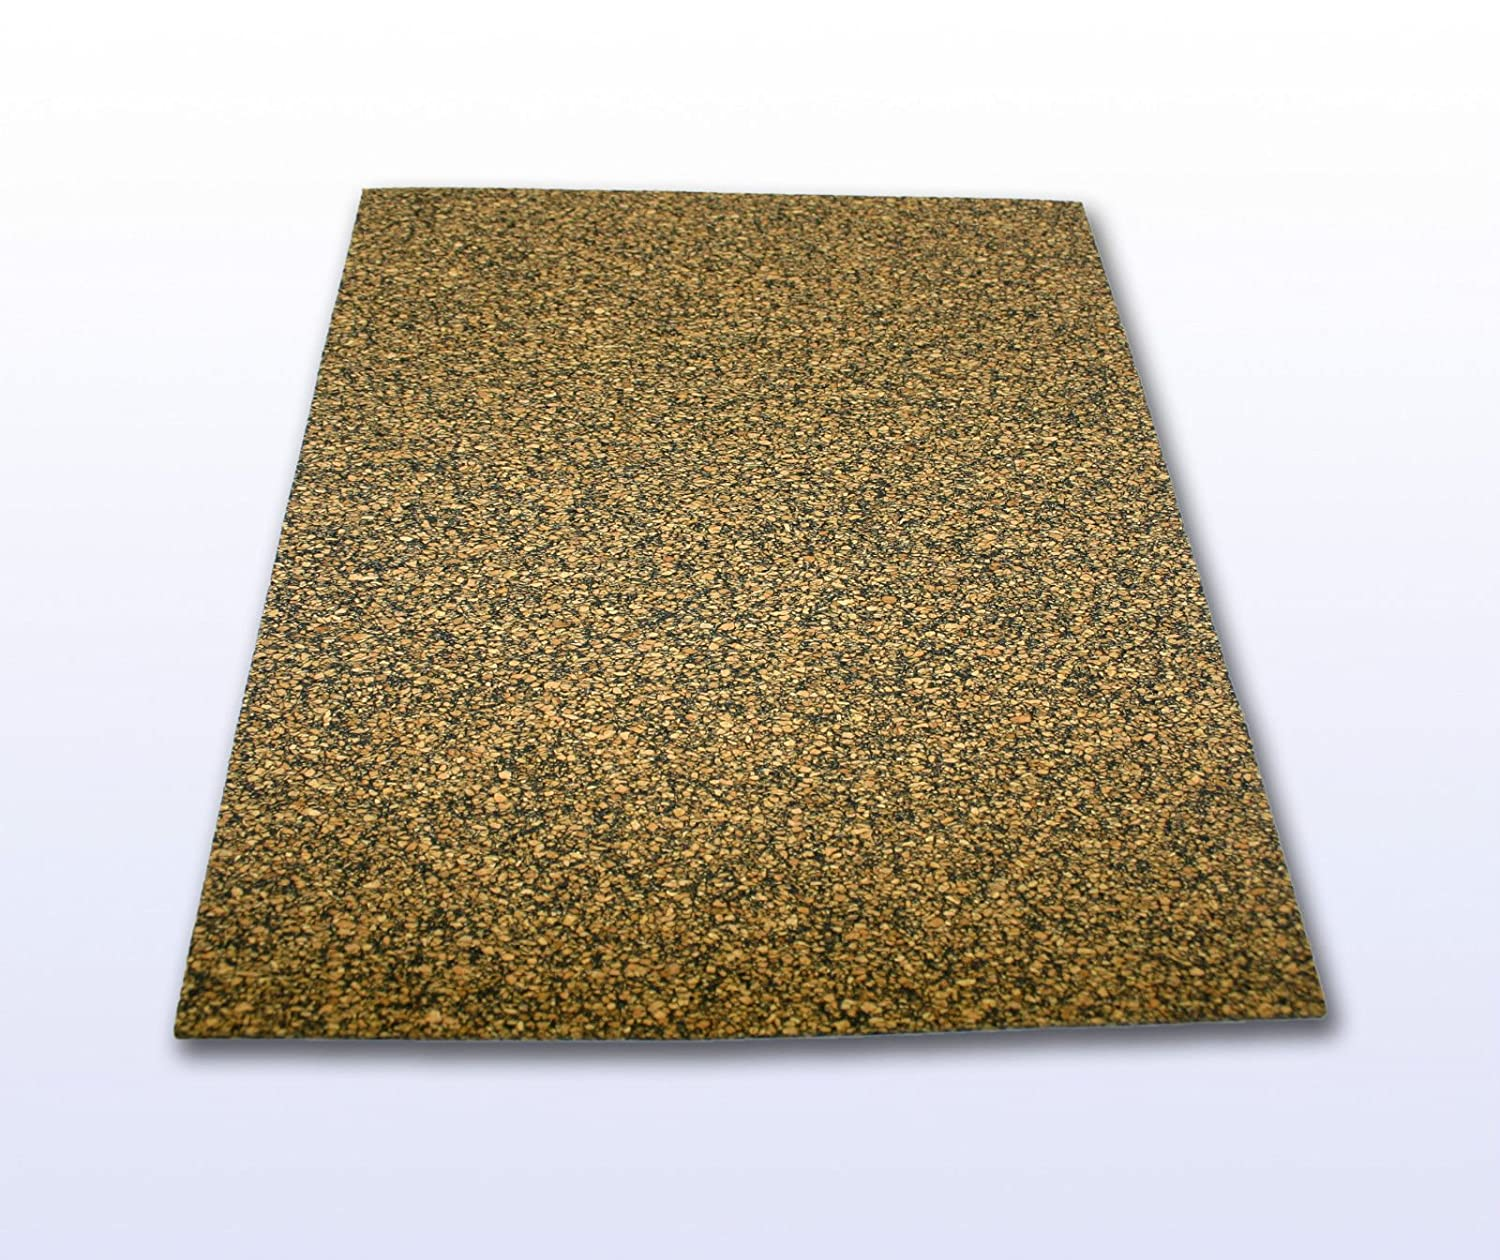 Nitrile bonded cork sheet - gasket material - A4 size 3mm thick